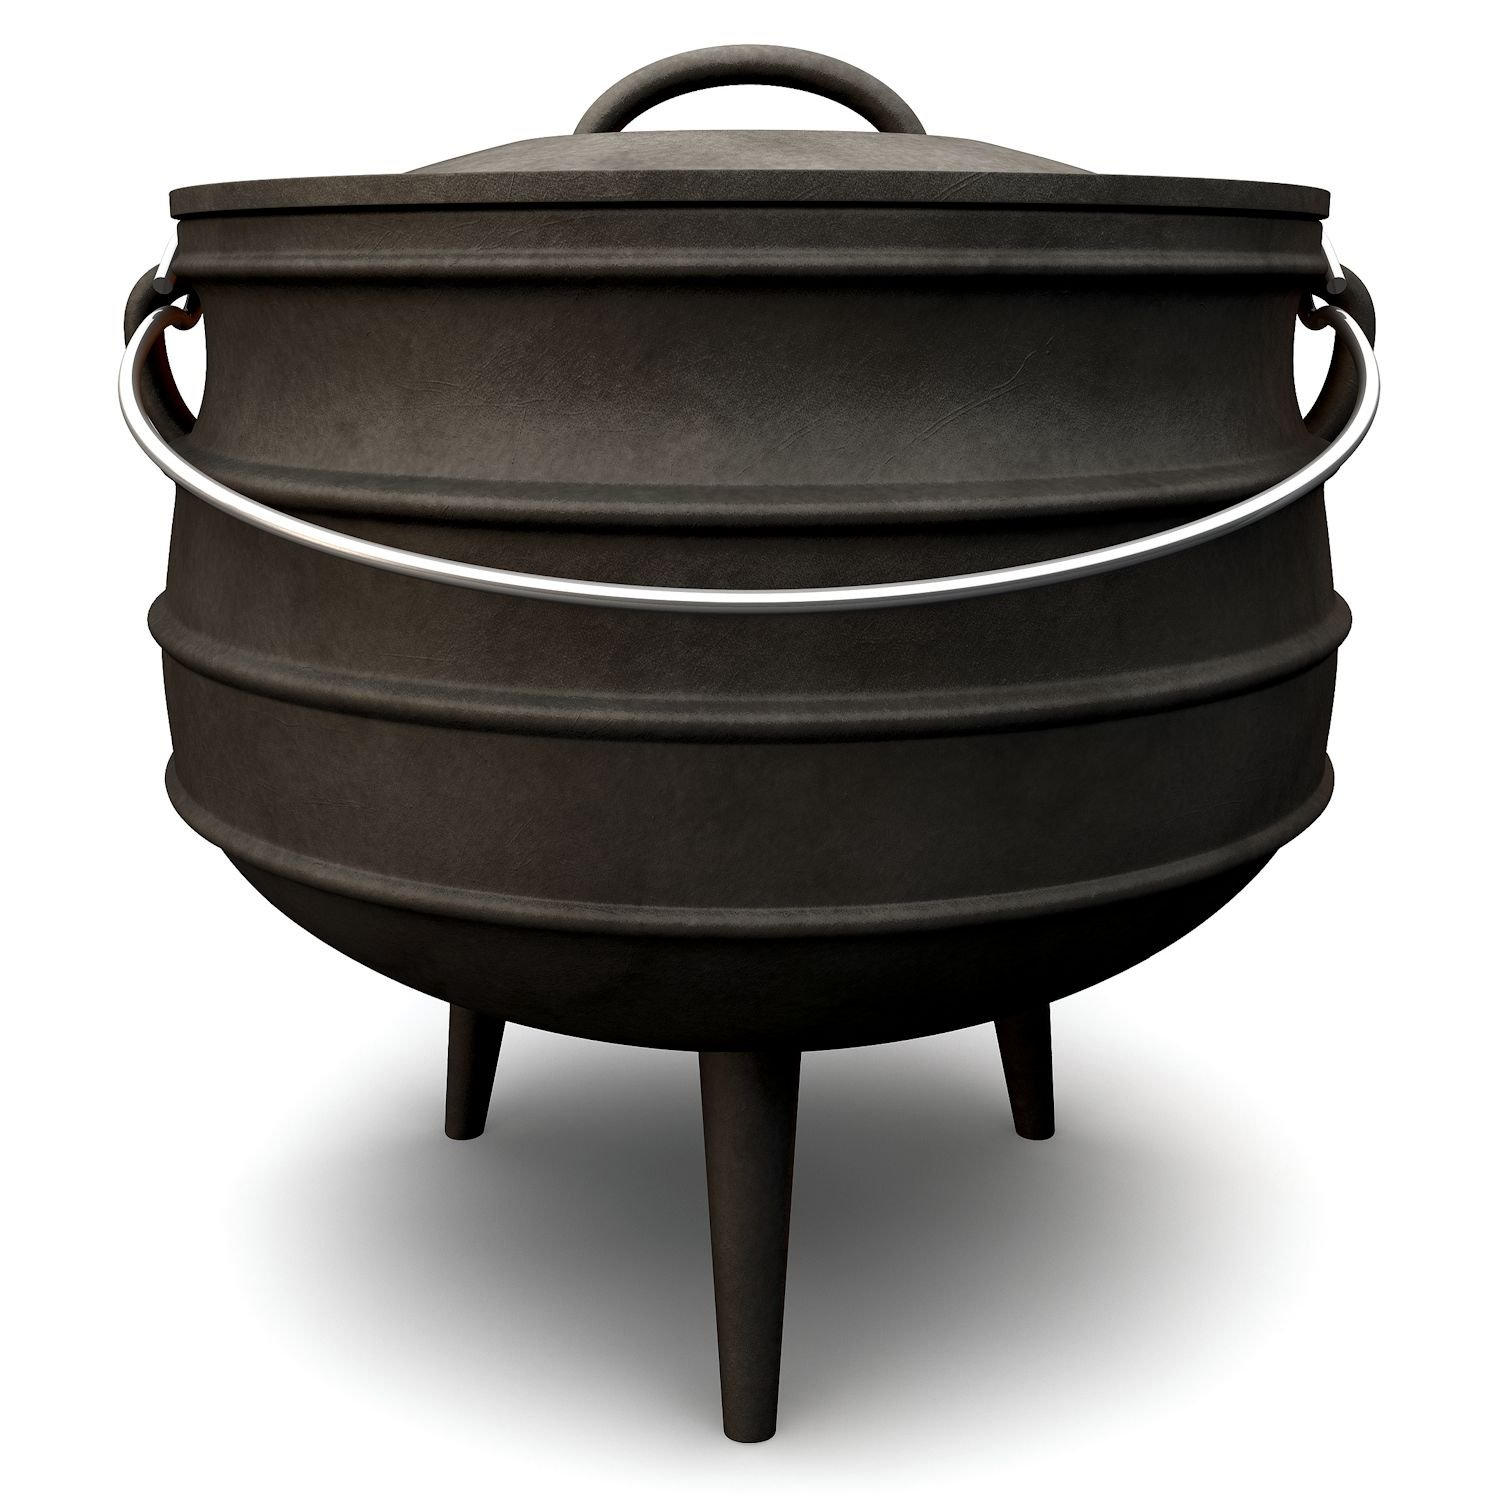 Potjie, Cast Iron - approx. 8 litre kettle, cauldron - South African Dutch Oven BBQ-Toro